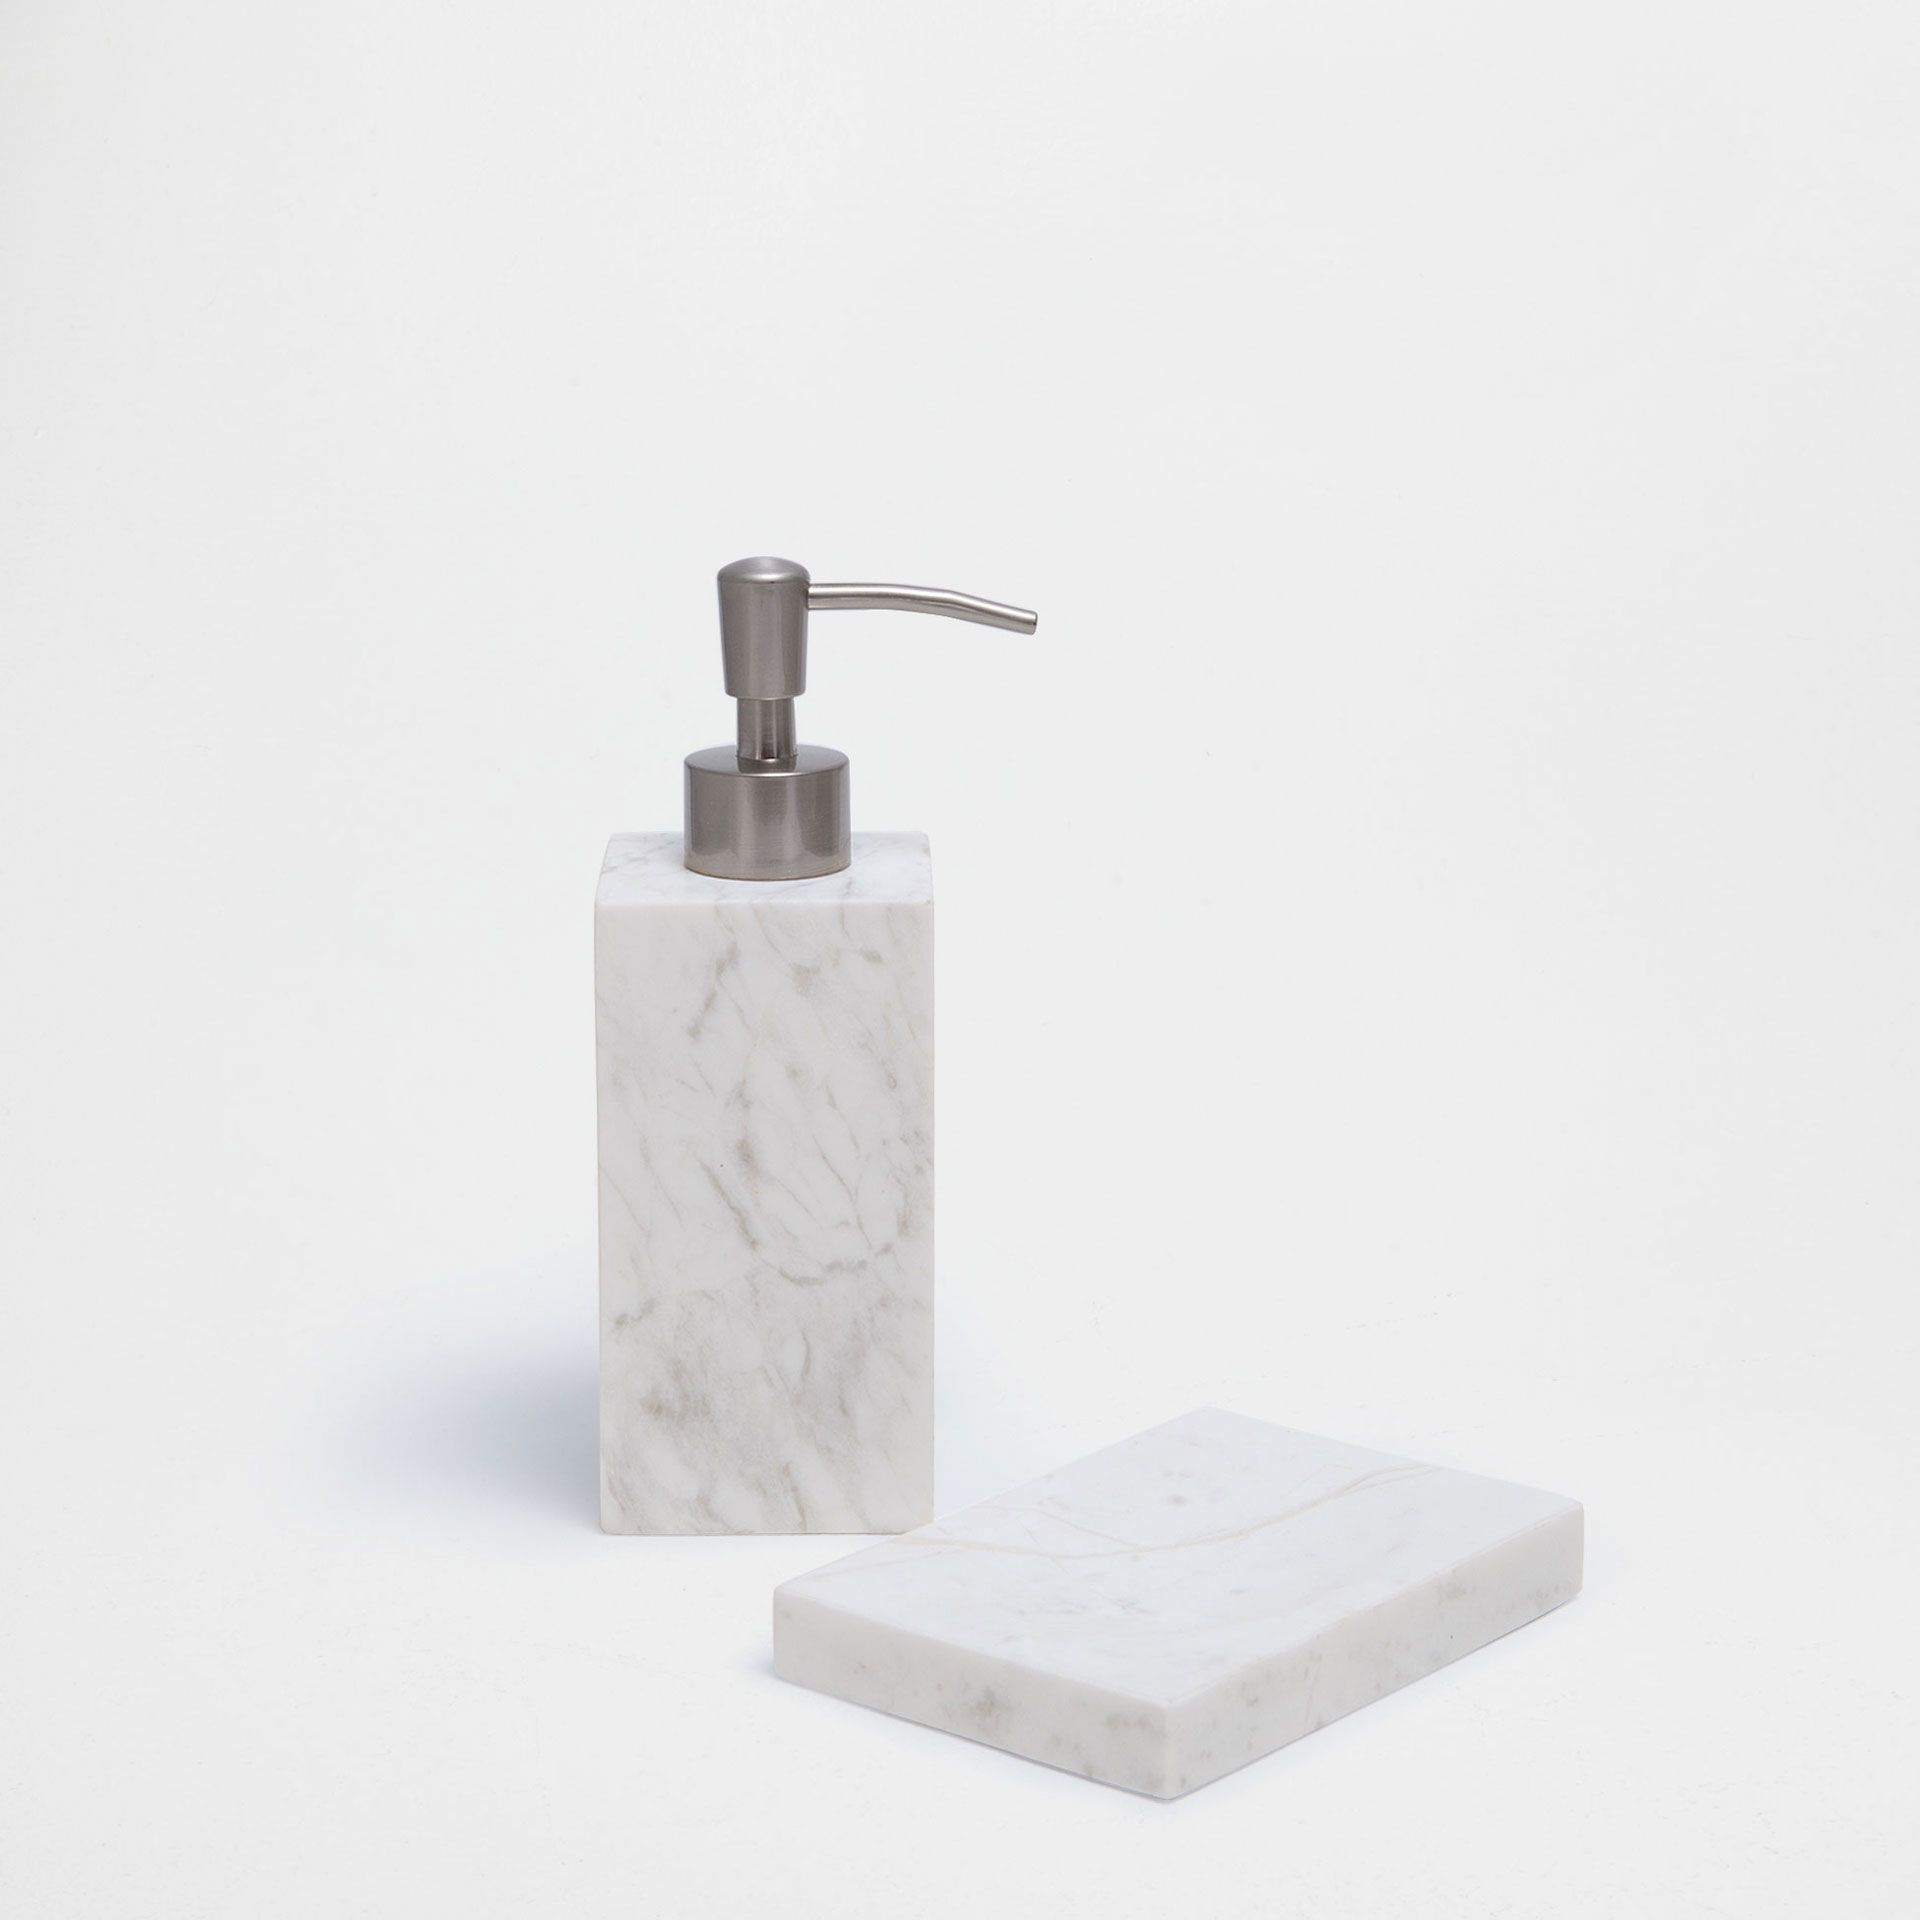 MARBLE BATHROOM SET  Bathroom sets, Bathroom, Bathroom accessories